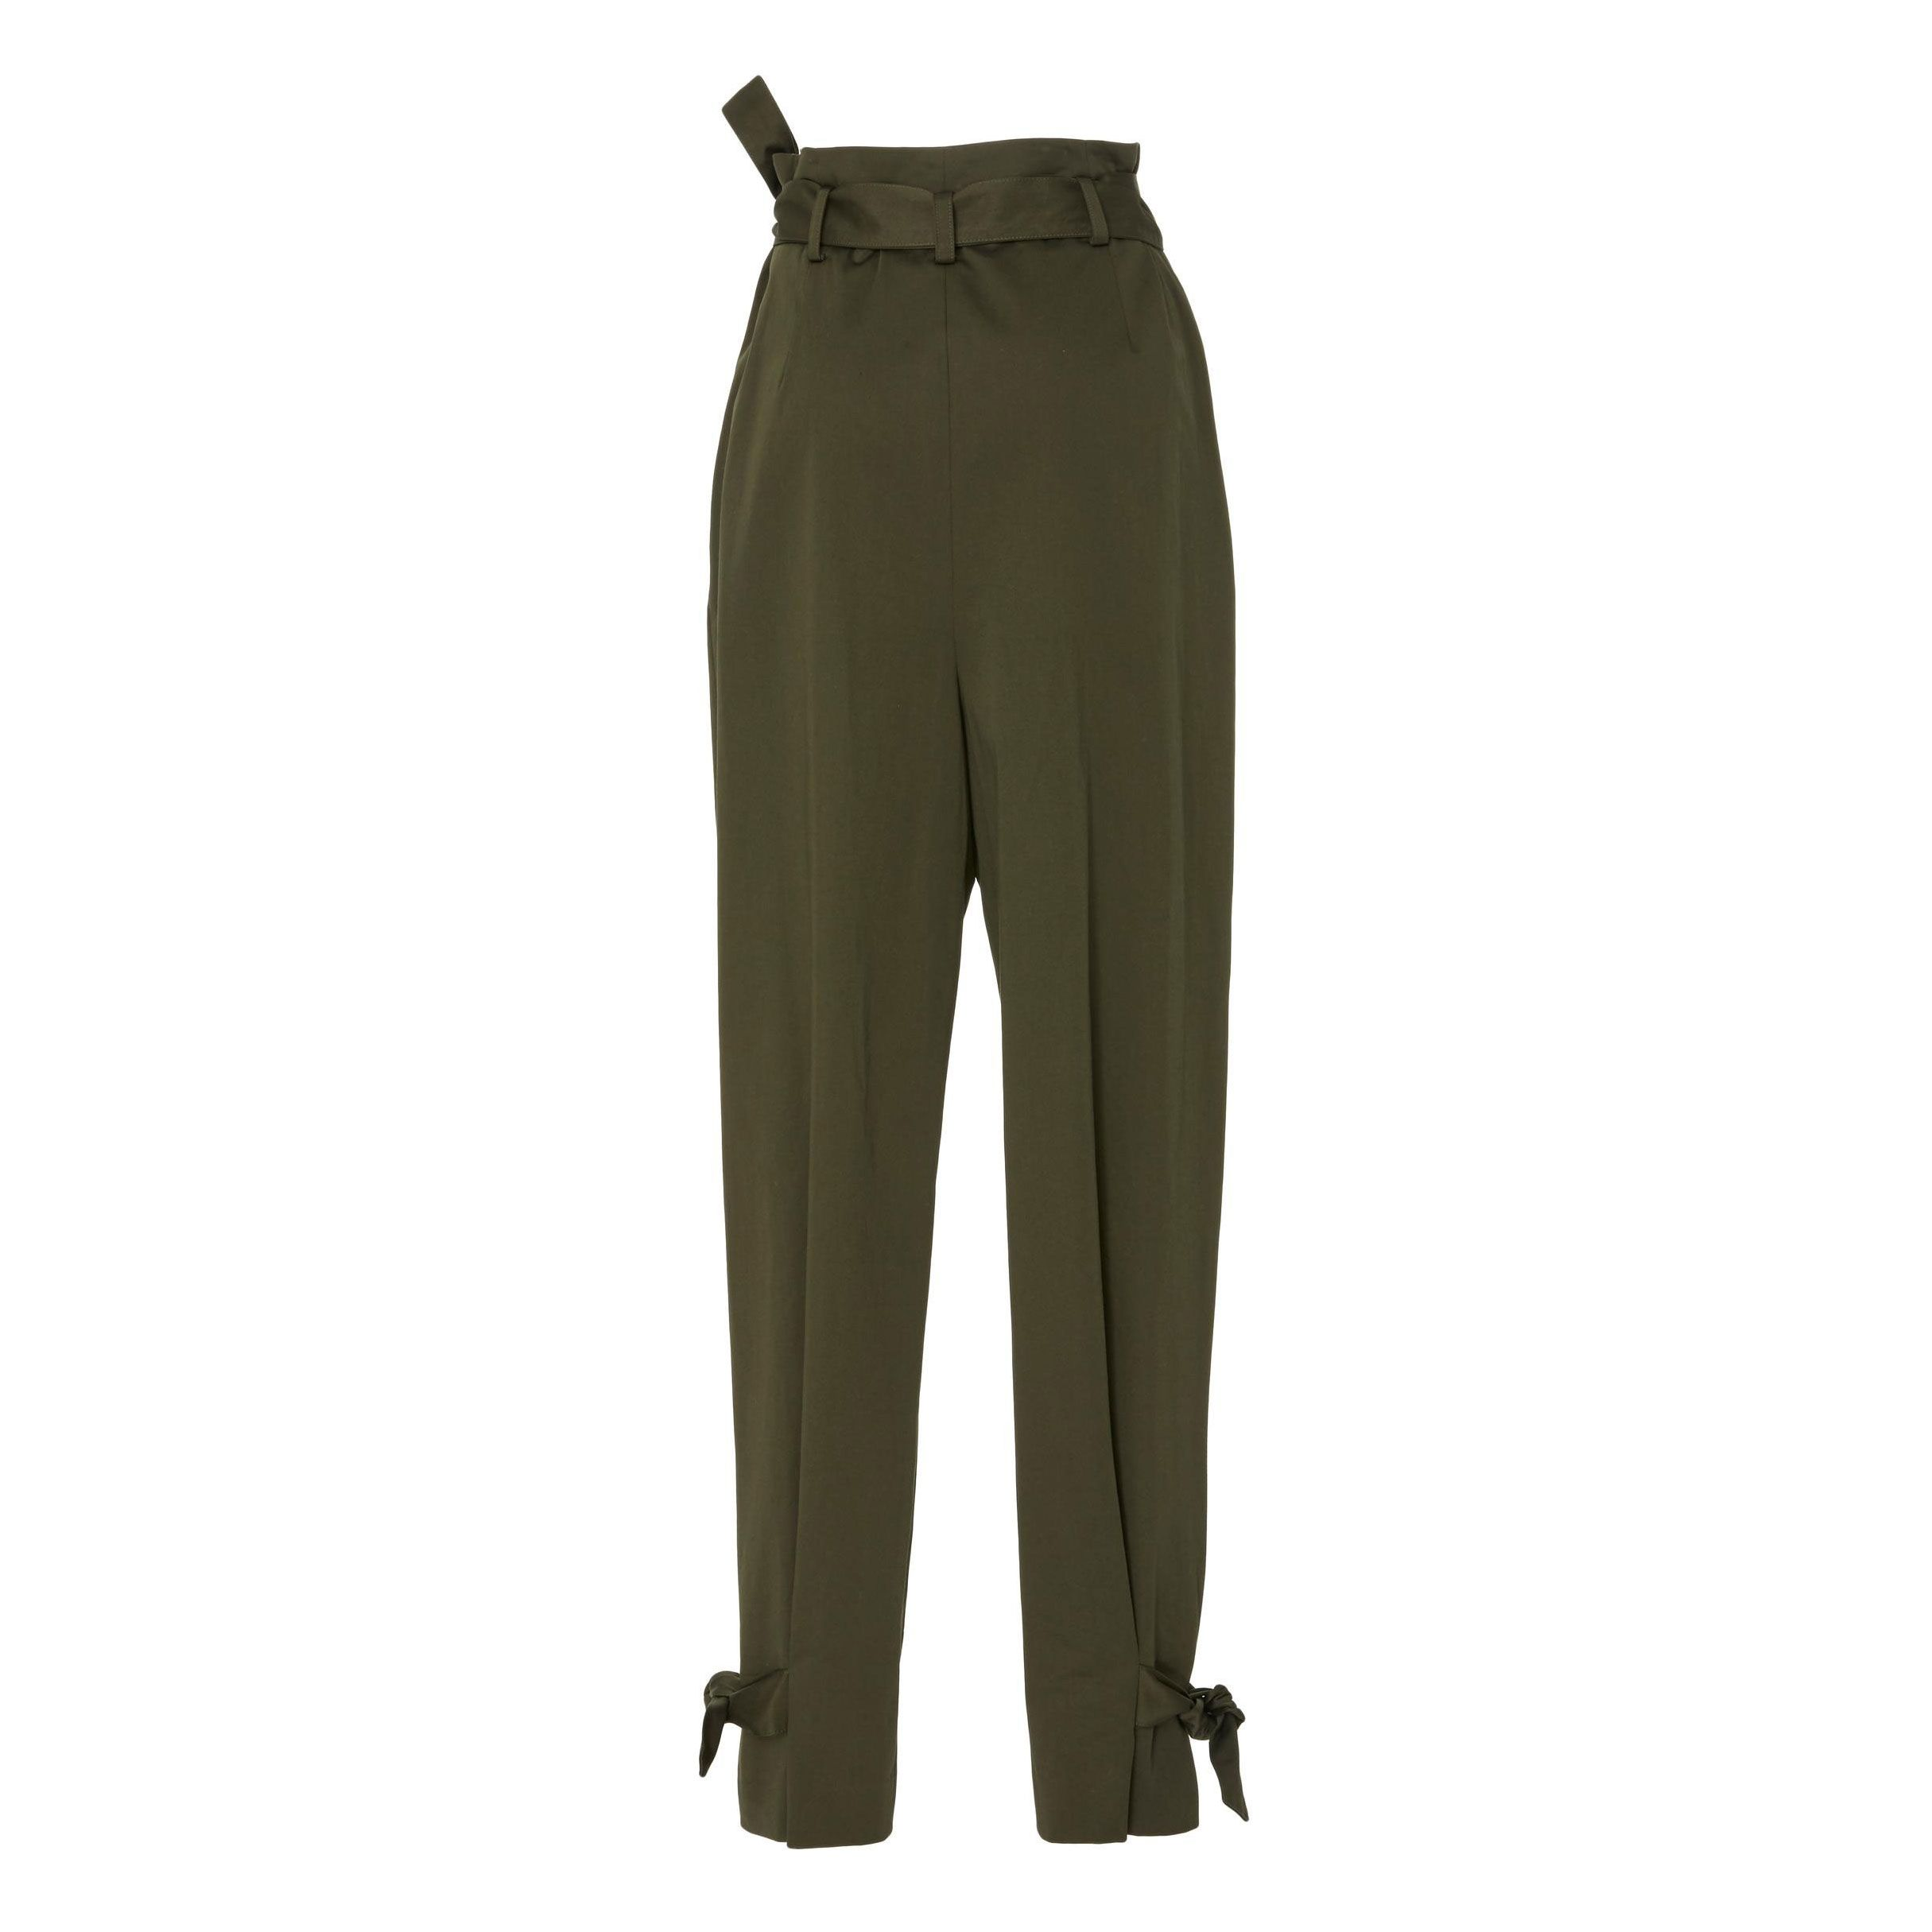 Rosetta Getty Knotted High Rise Trousers